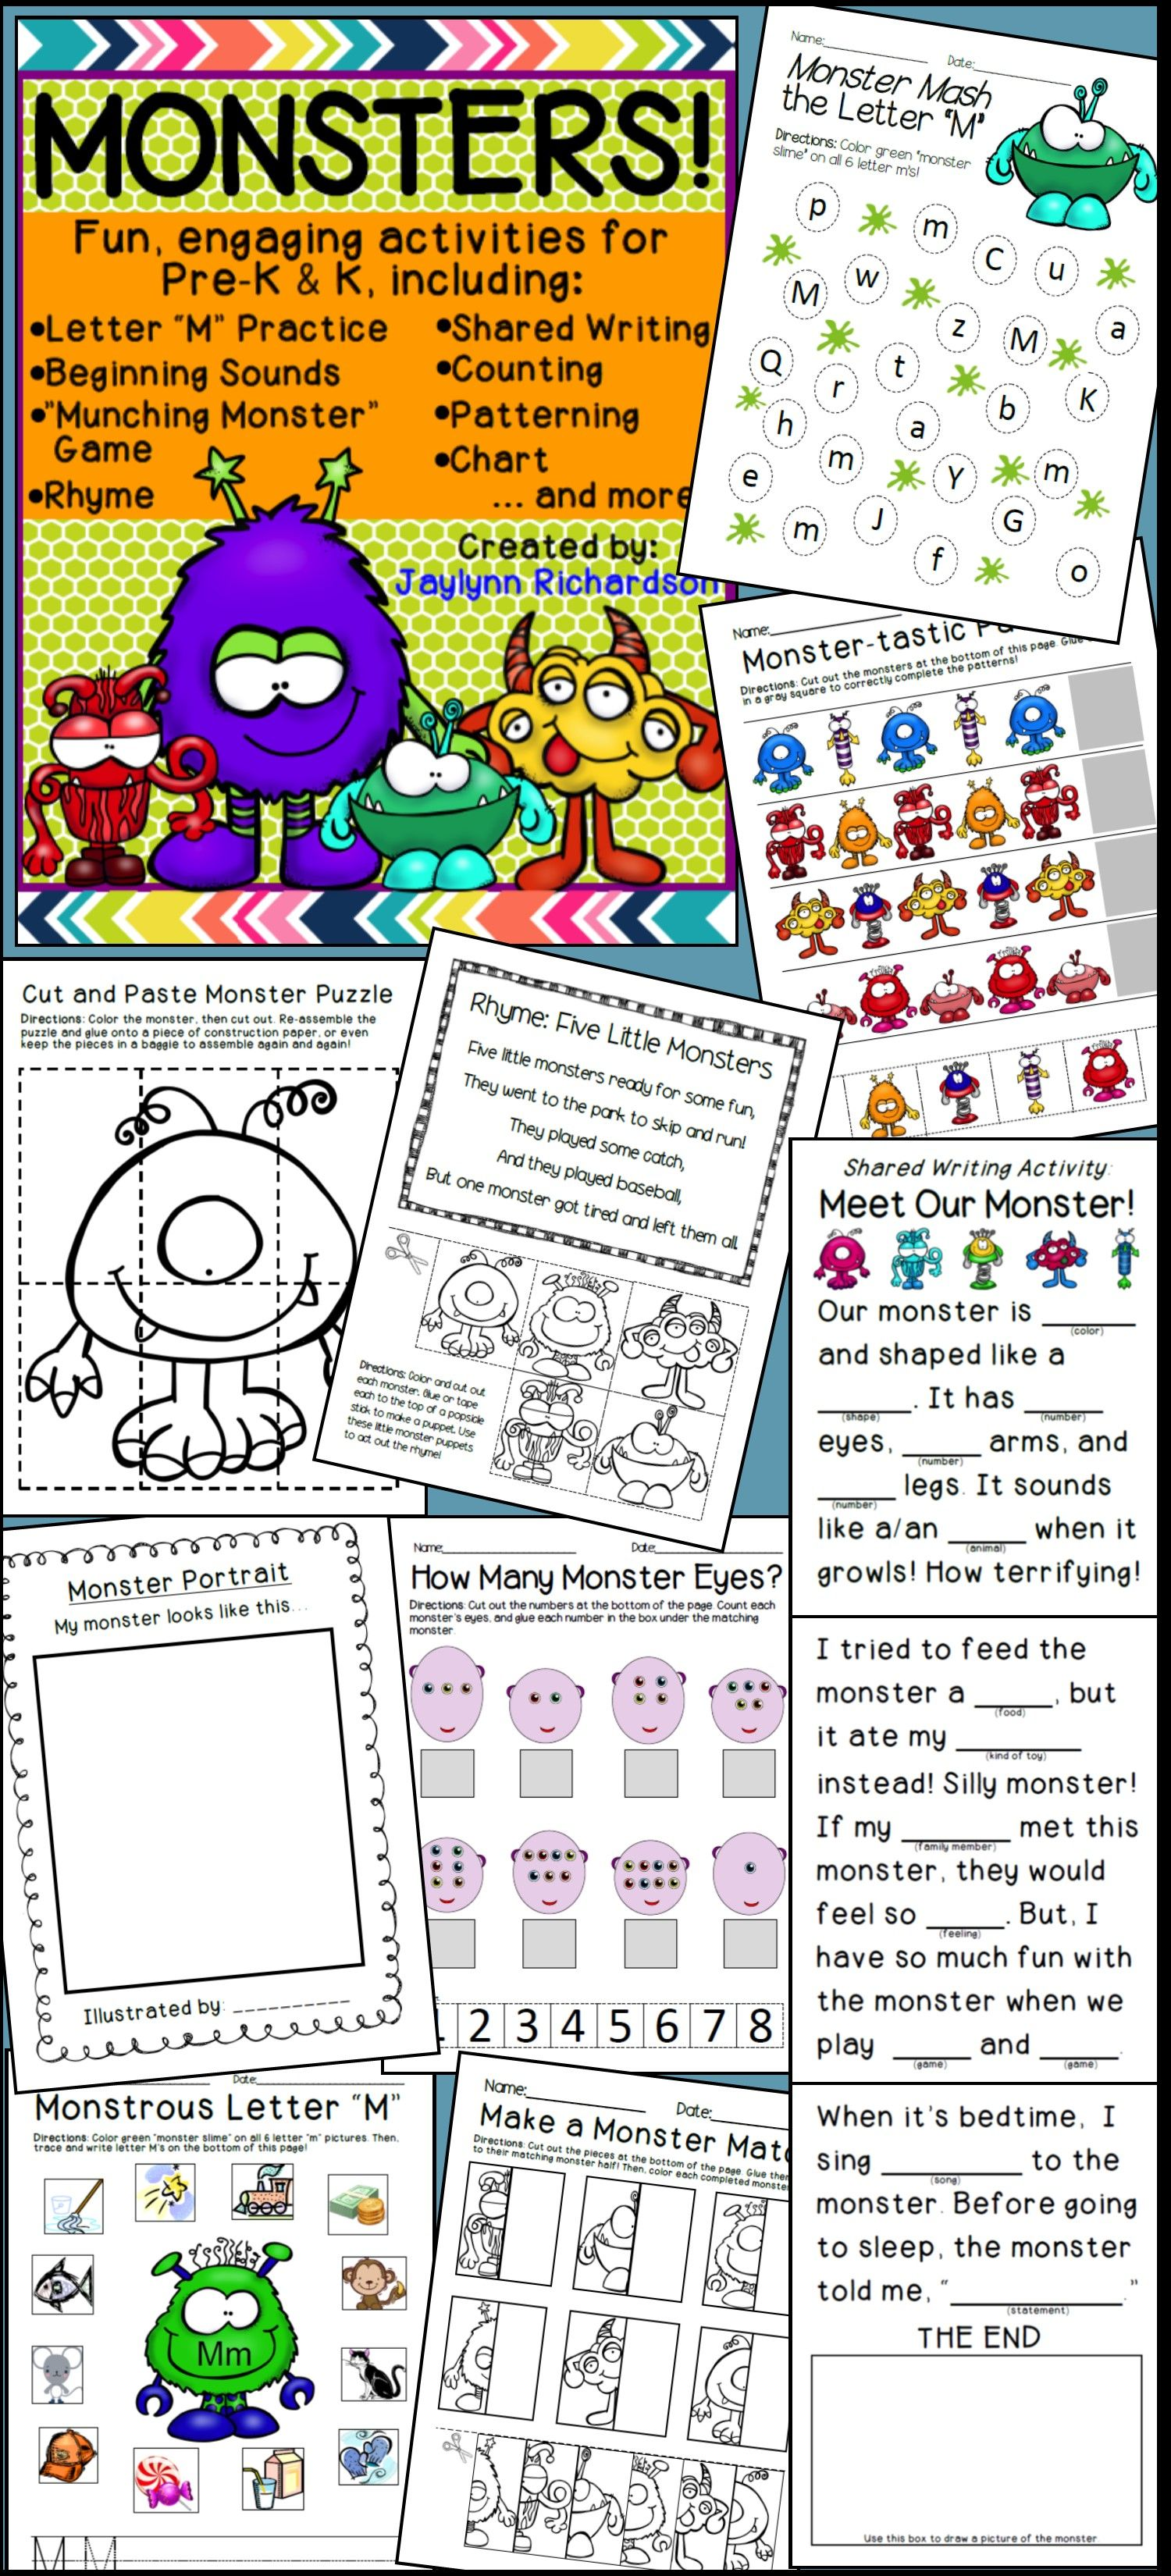 Monsters Fun Engaging Activities For Pre K Amp K